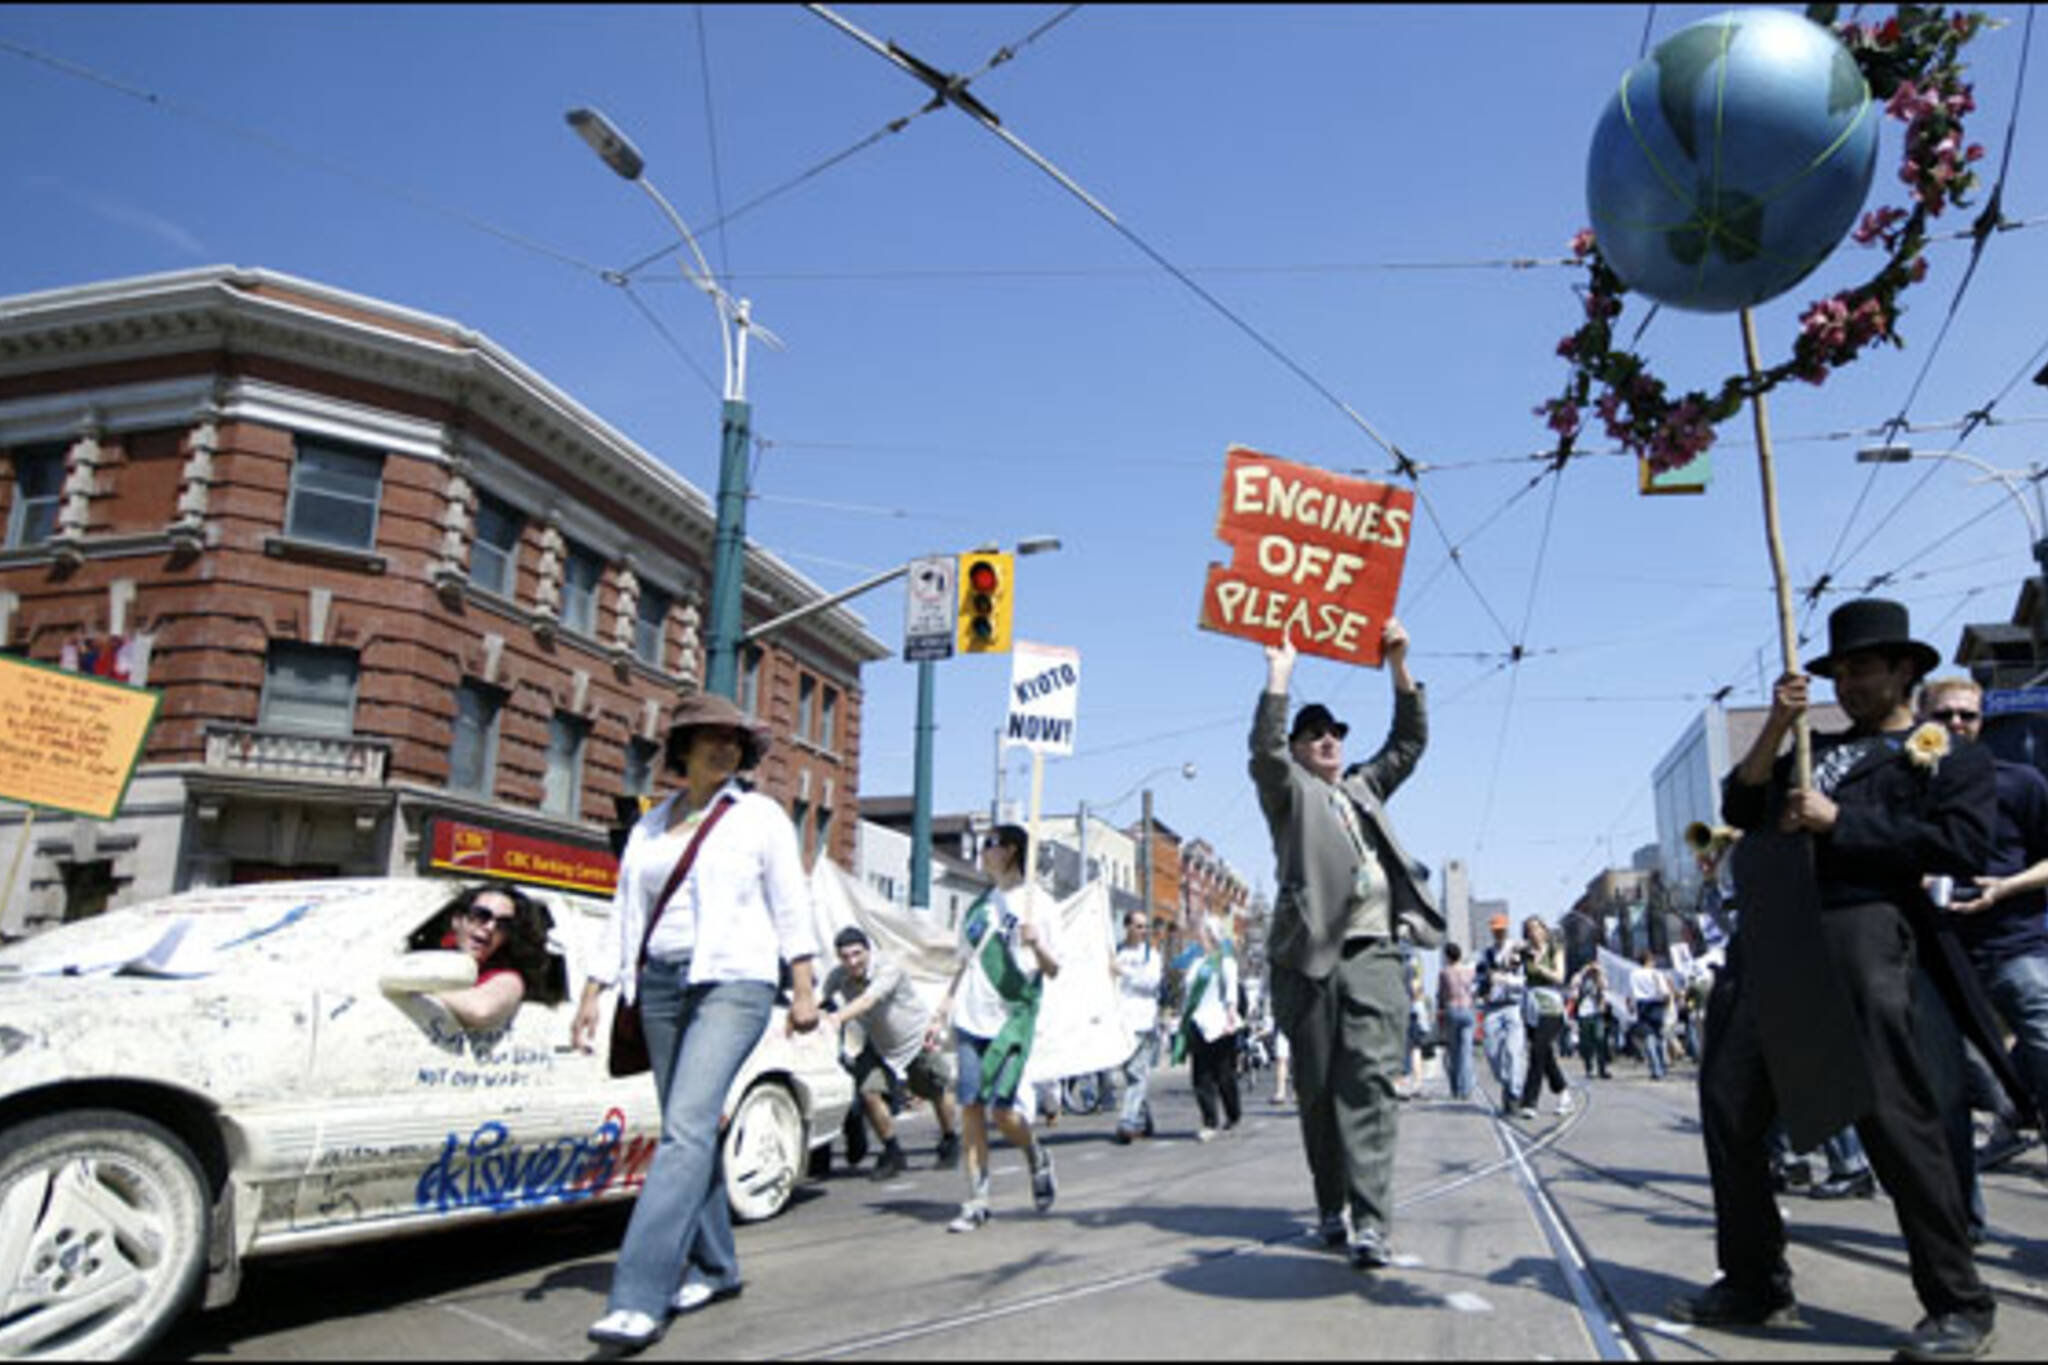 Earth Day March with Petition Car in Toronto